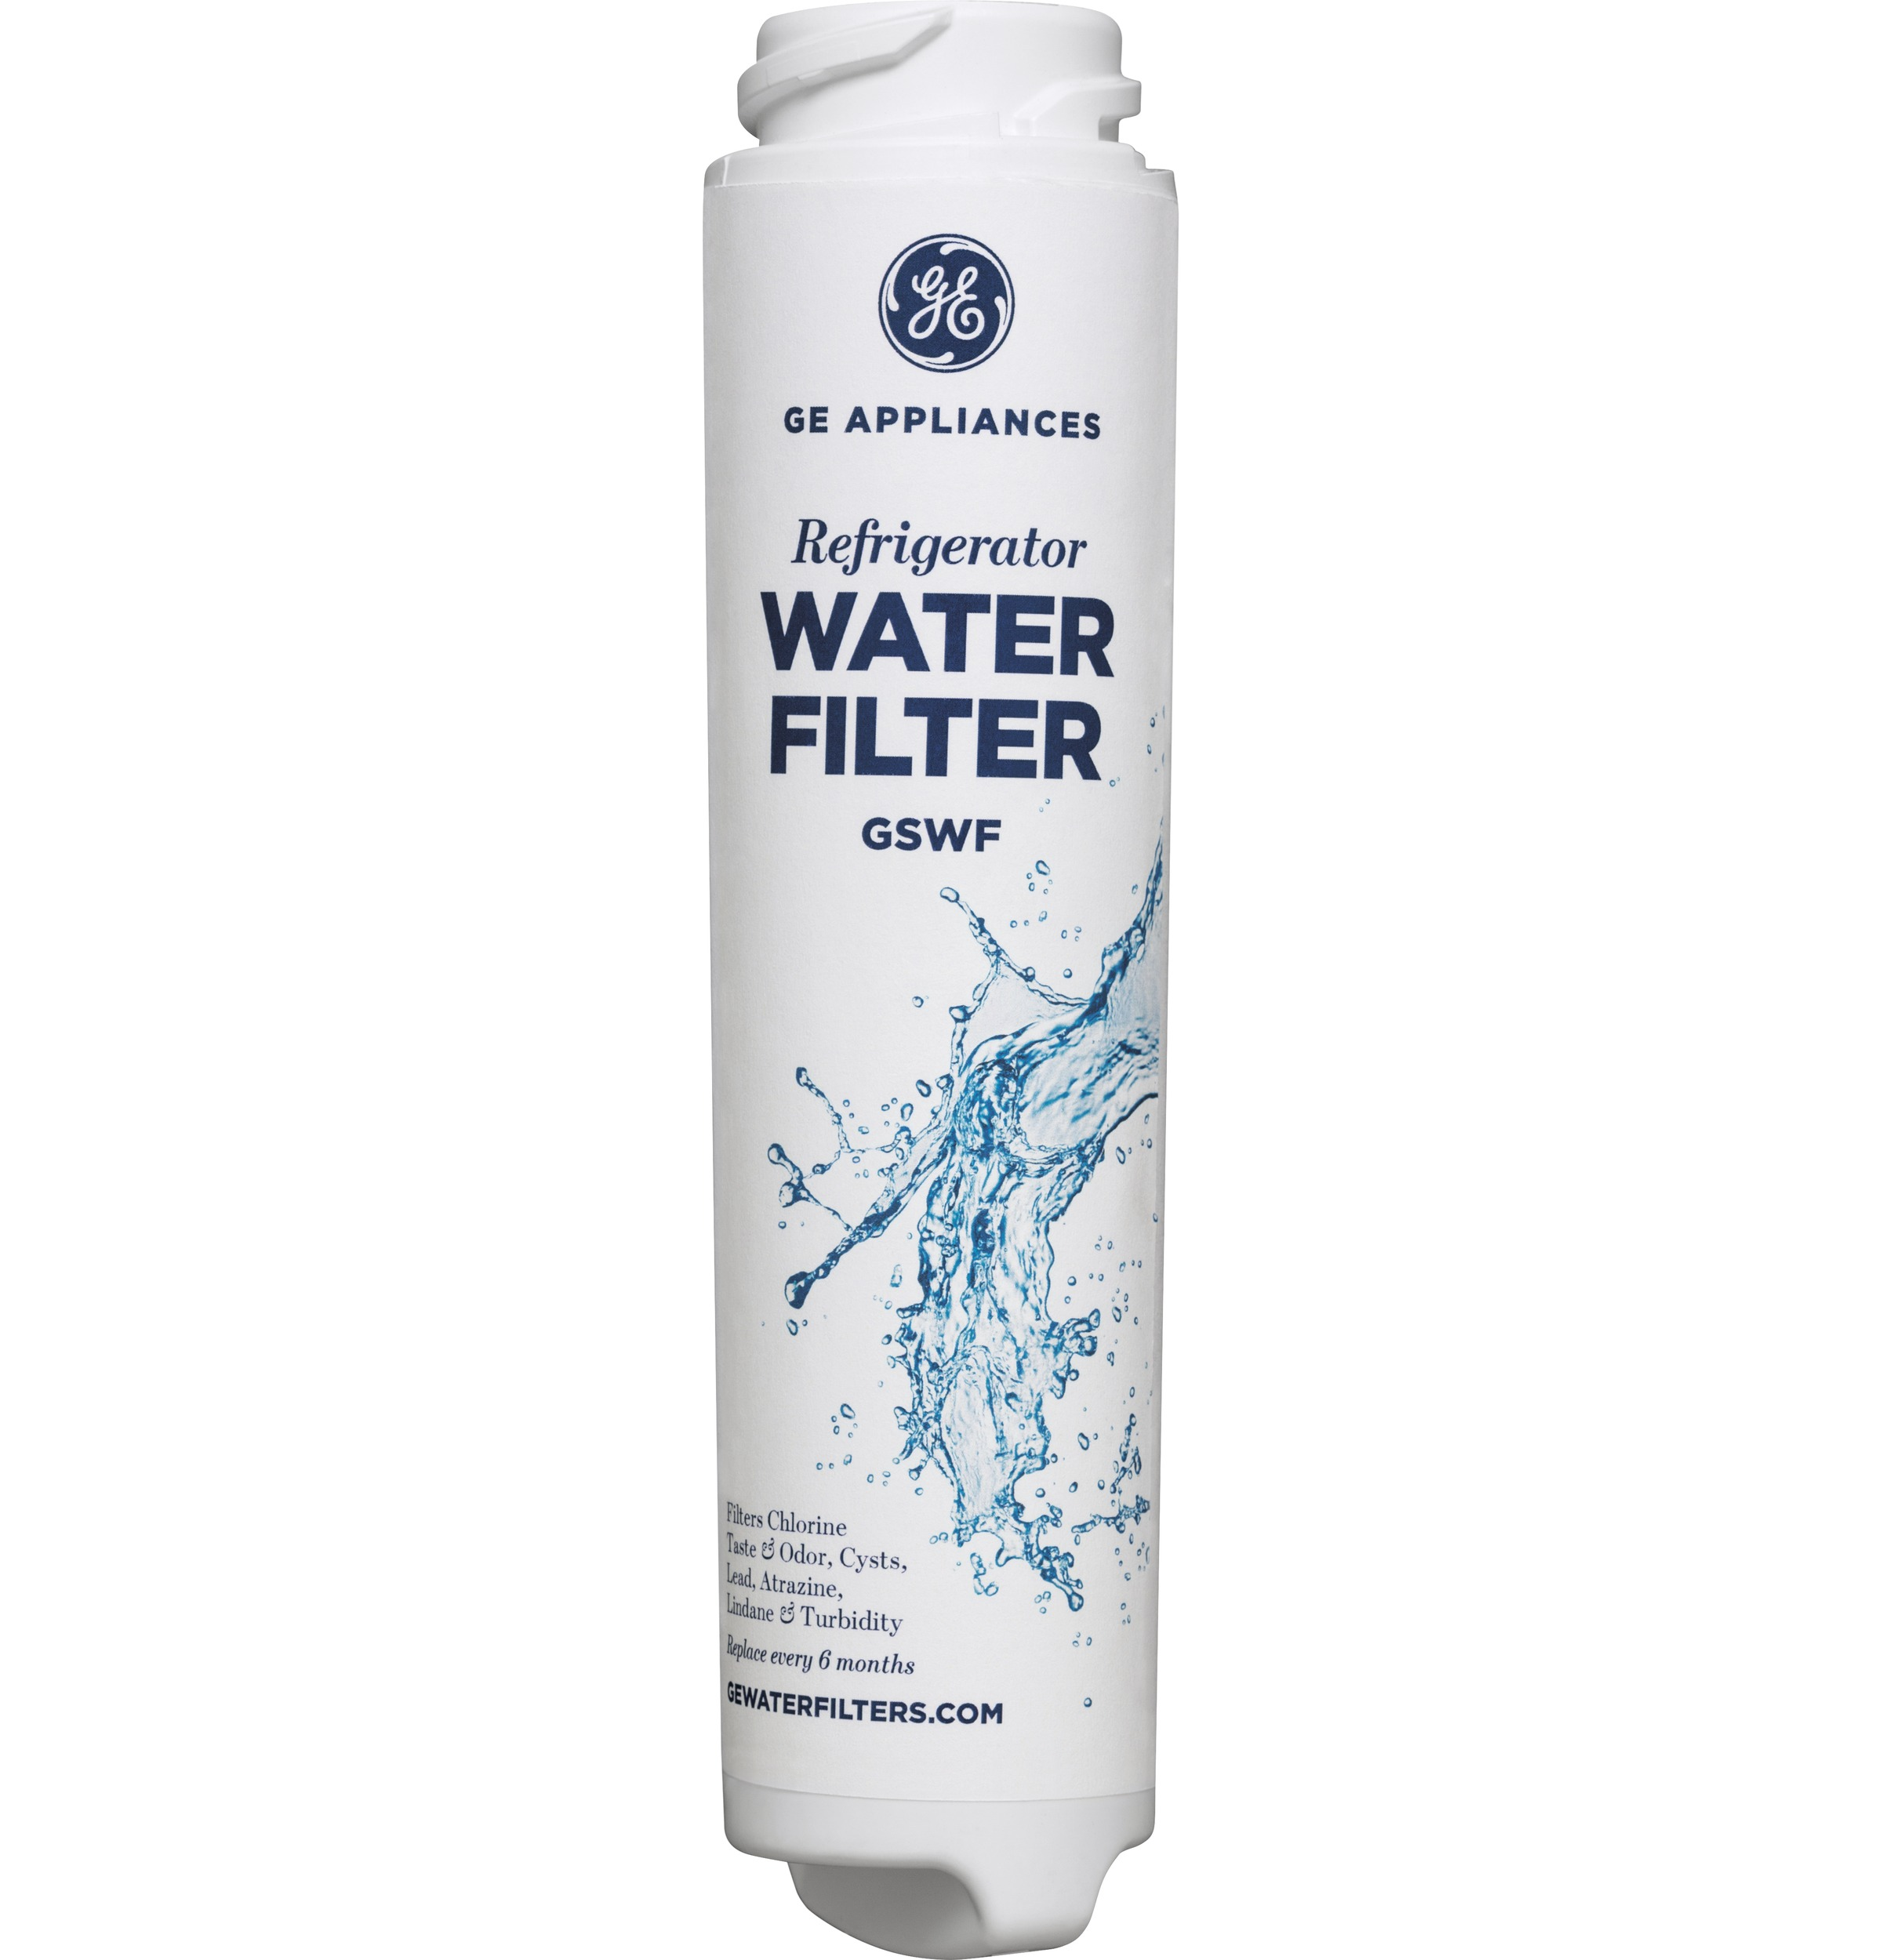 How To Replace Ge Water Filter Gswf Gear Gswf Refrigerator Water Filter Ge Parts